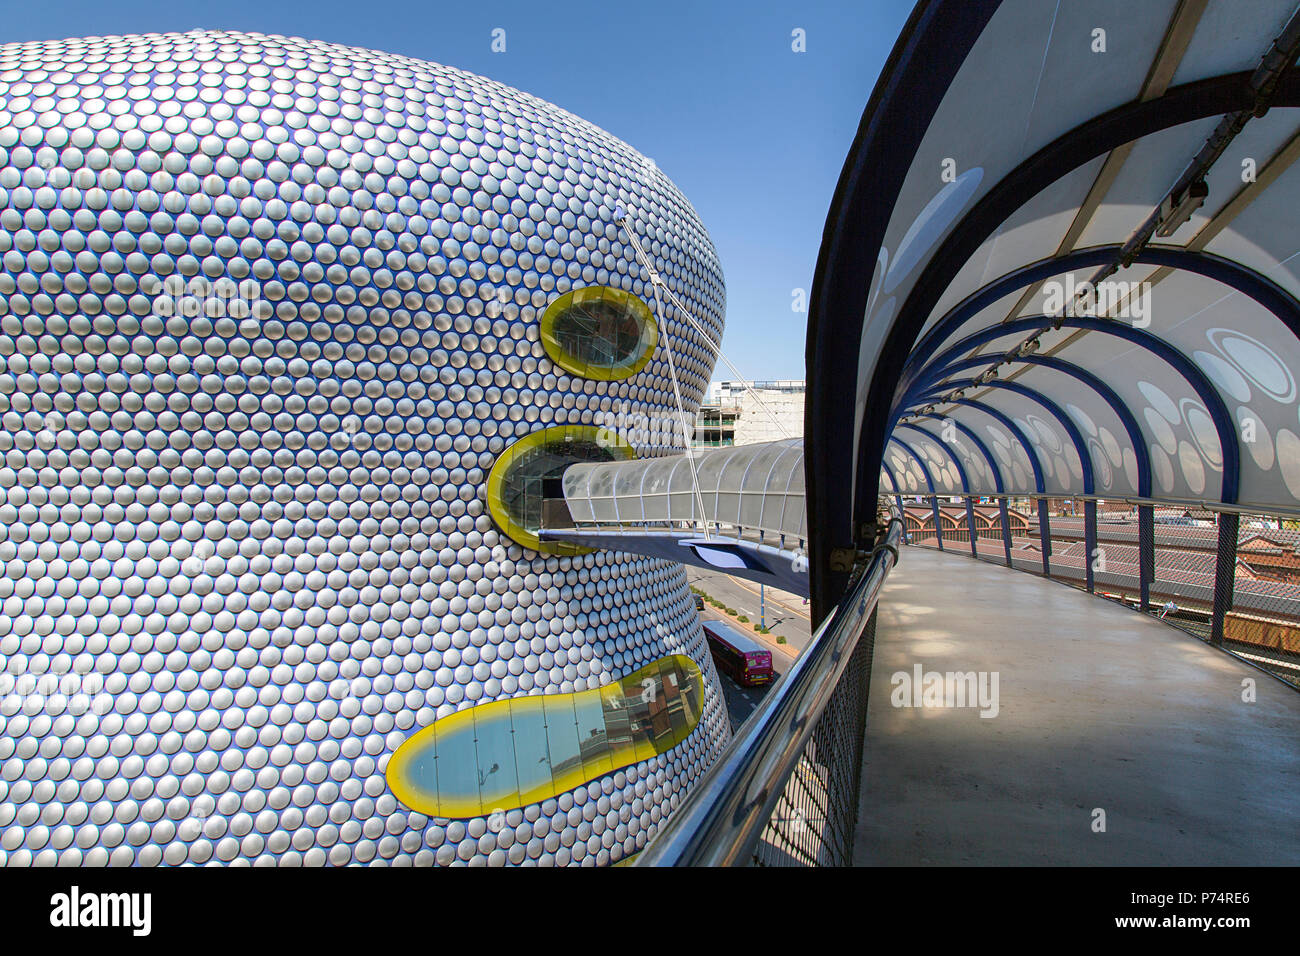 Birmingham, UK: June 29, 2018: Selfridges Department Store in Park Street, part of the Bullring Shopping Centre - from the multi-storey car park. Stock Photo